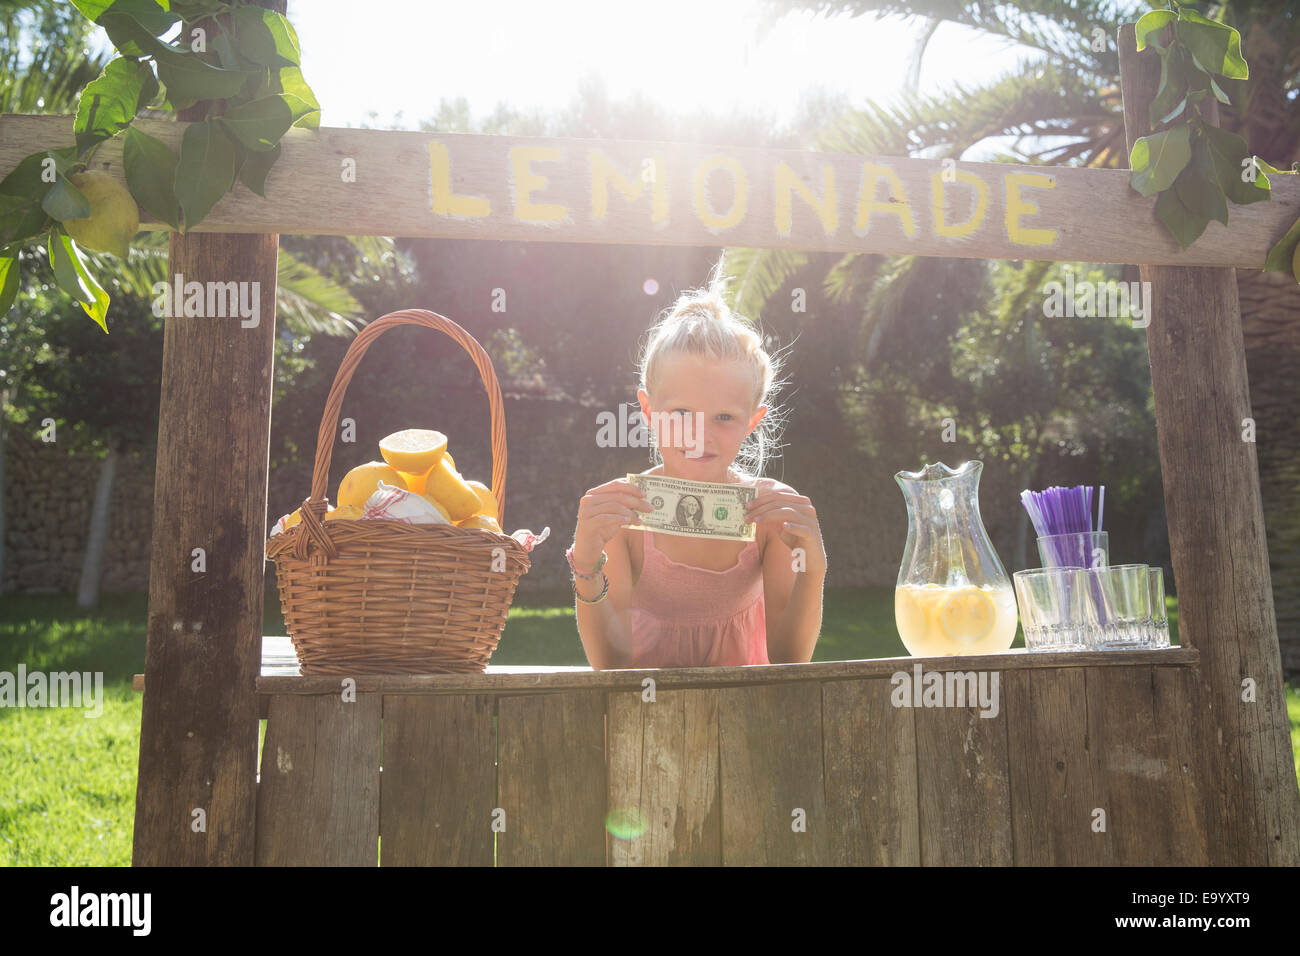 Portrait de jeune fille sur lemonade stand holding up one dollar bill Photo Stock